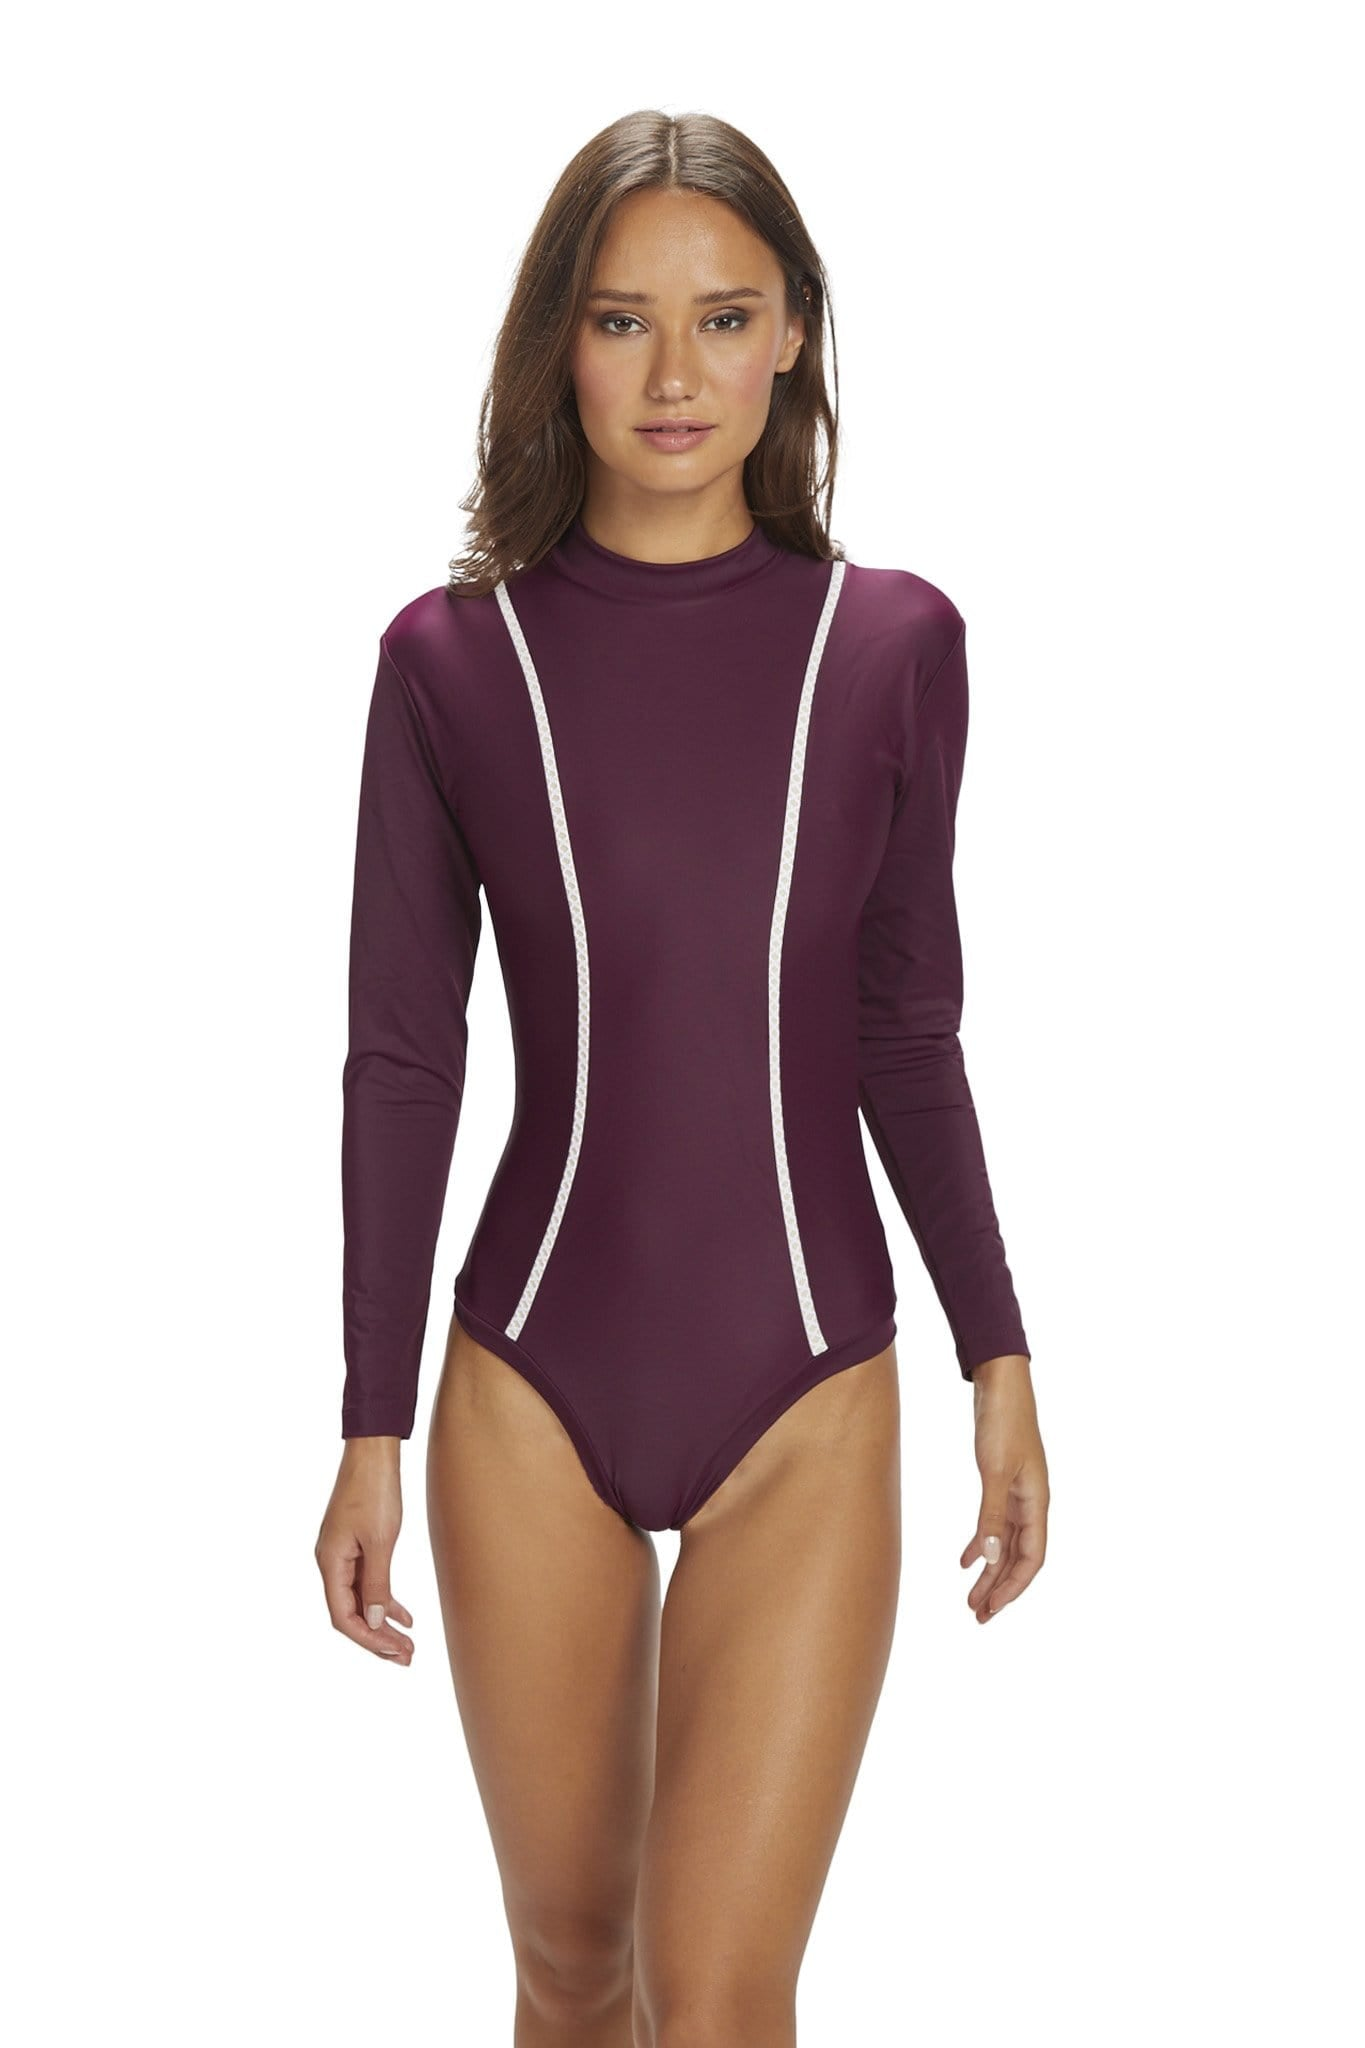 Makena Surf Suit Cheeky Cowry Shell